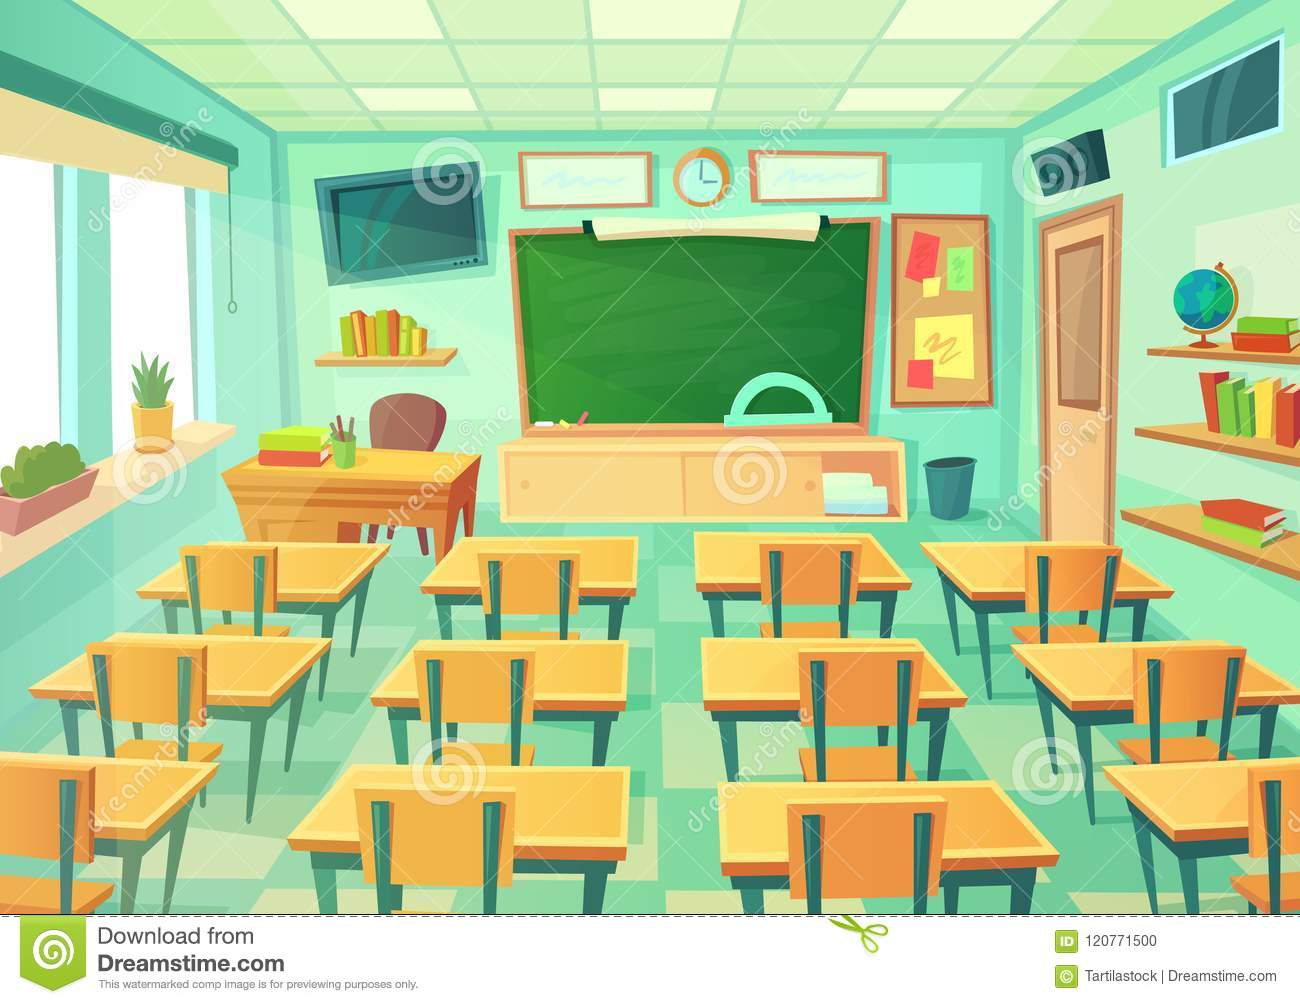 Modern Classroom Lesson Indicators ~ Empty cartoon classroom school room with class chalkboard